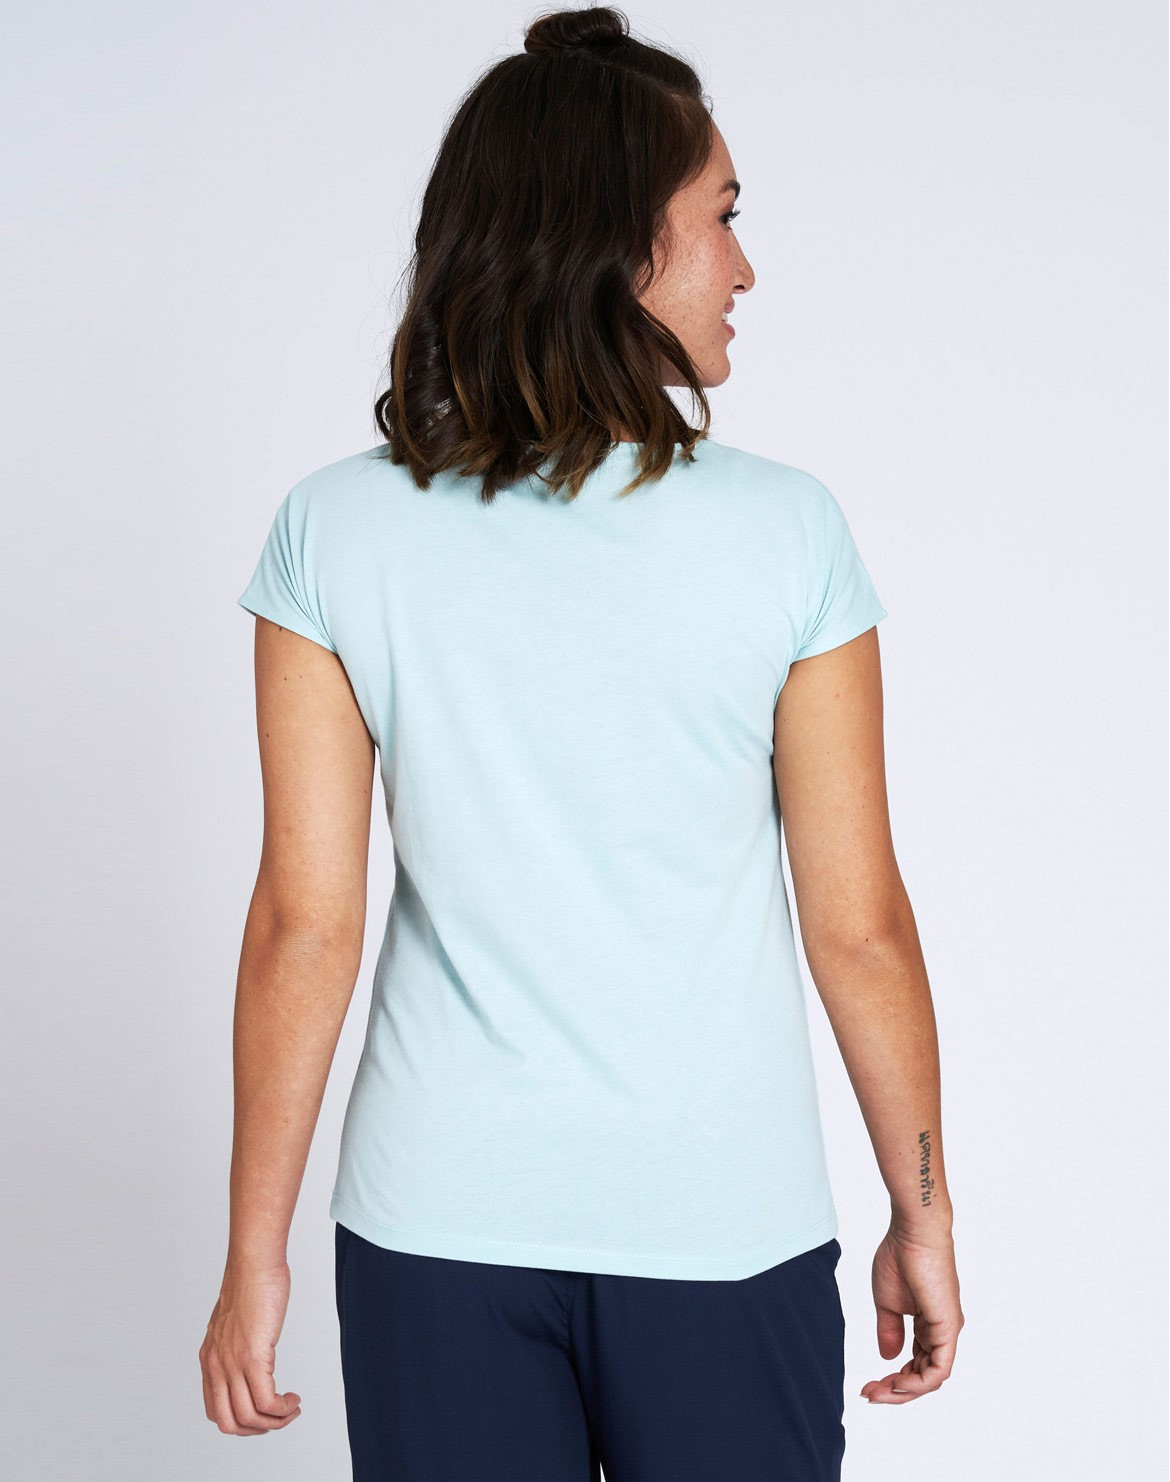 Dolphin Casual T-Shirt